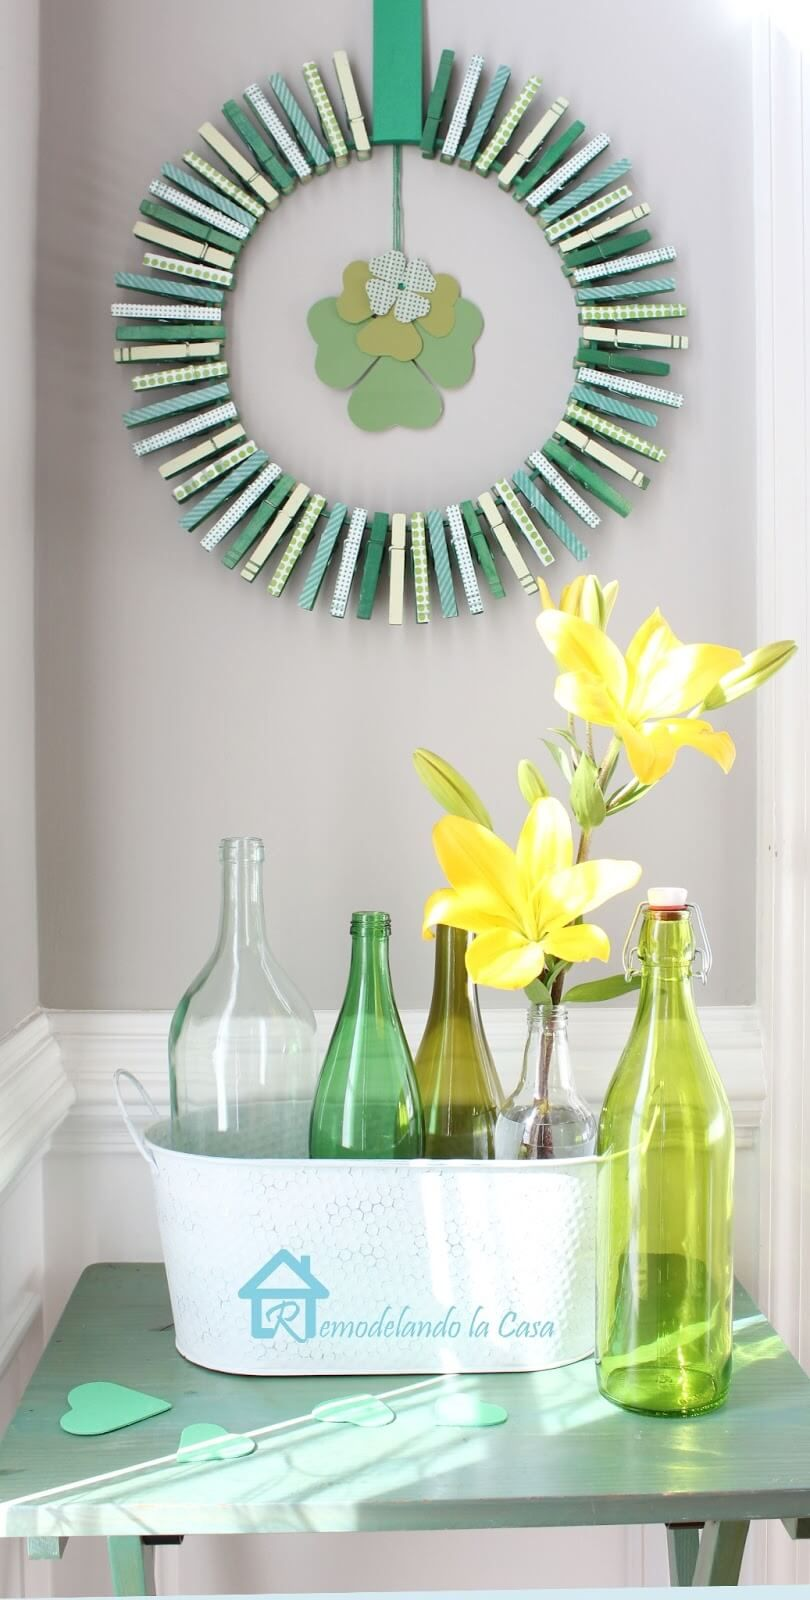 To acquire St. home day Patricks decorations pictures pictures trends